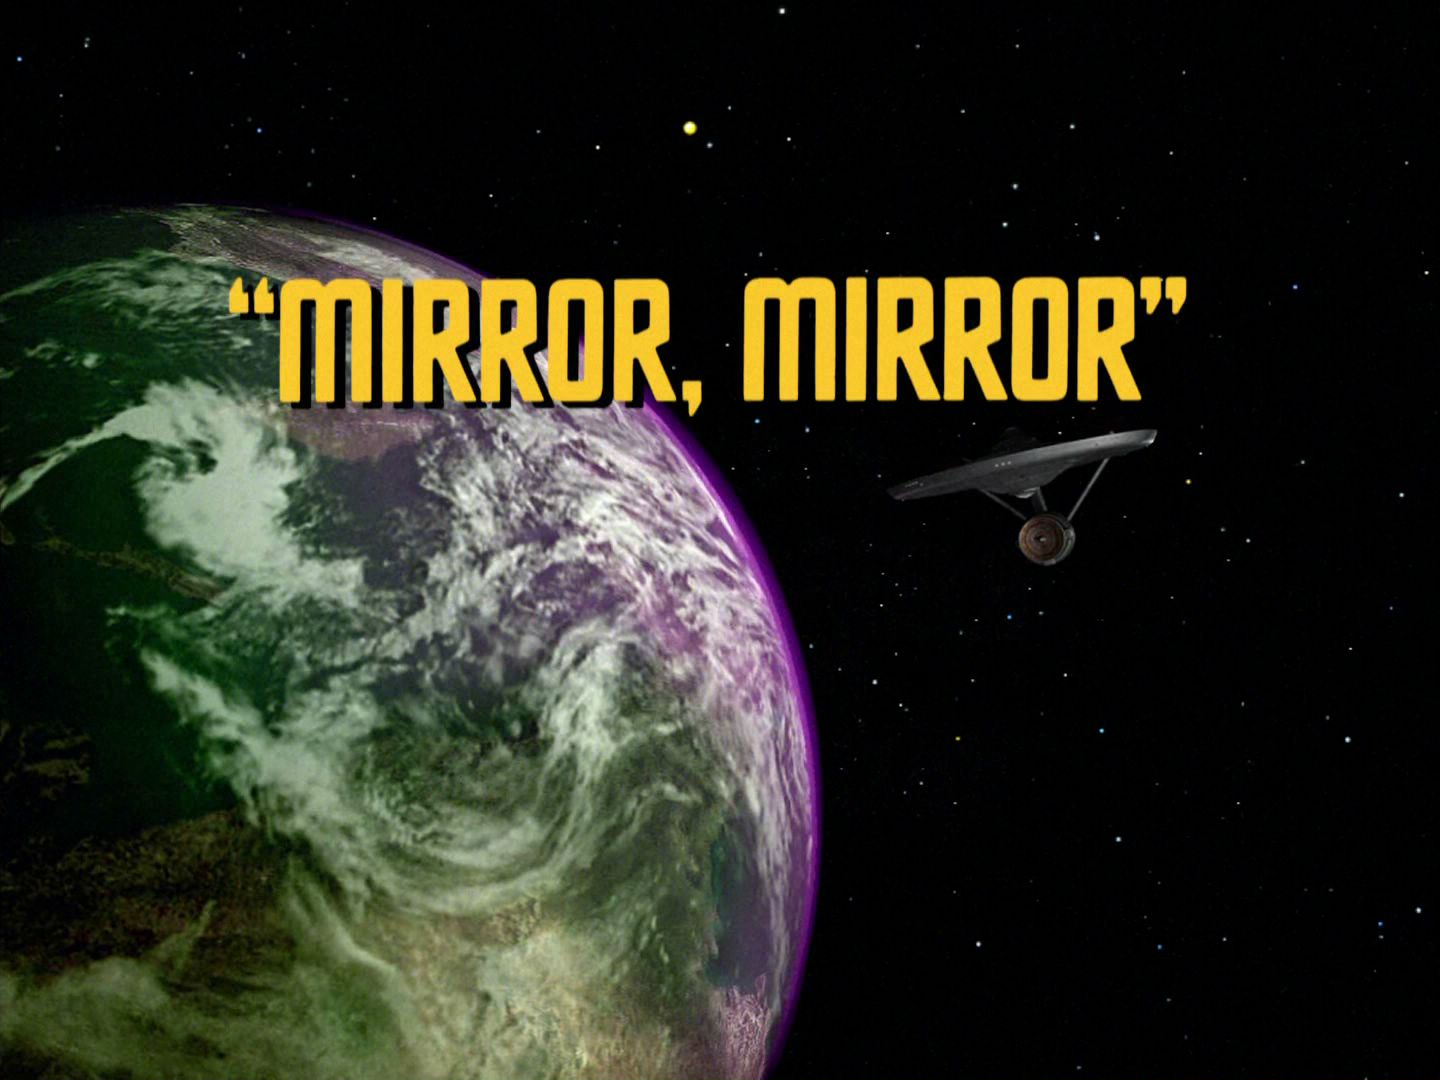 The title card from the Star Trek: The Original Series episode 'Mirror, Mirror'.